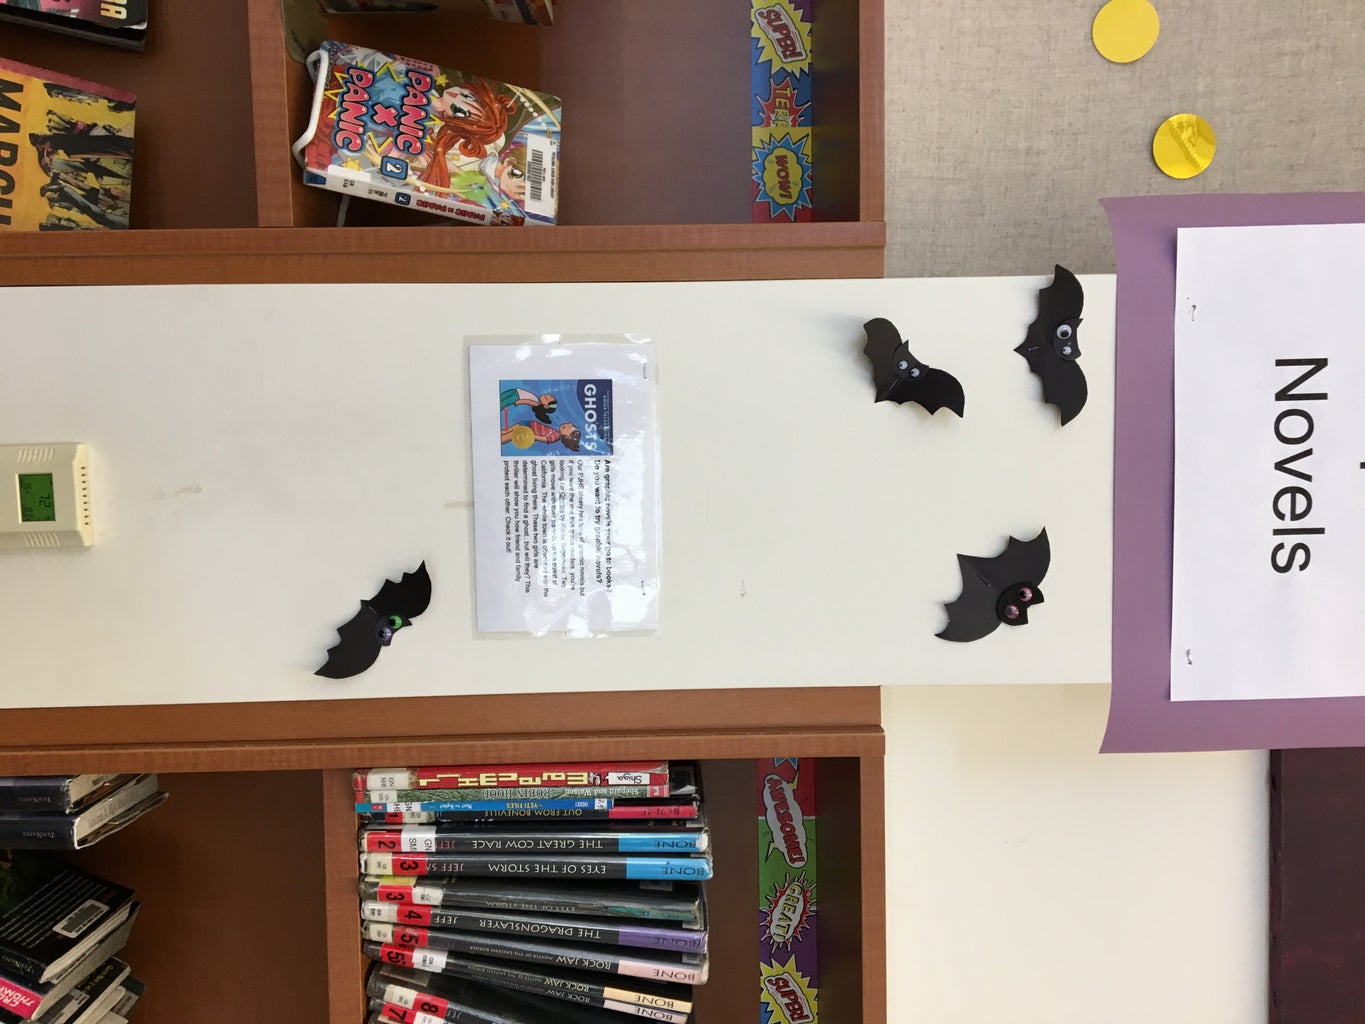 Hang Up Your Bats Around the Room!